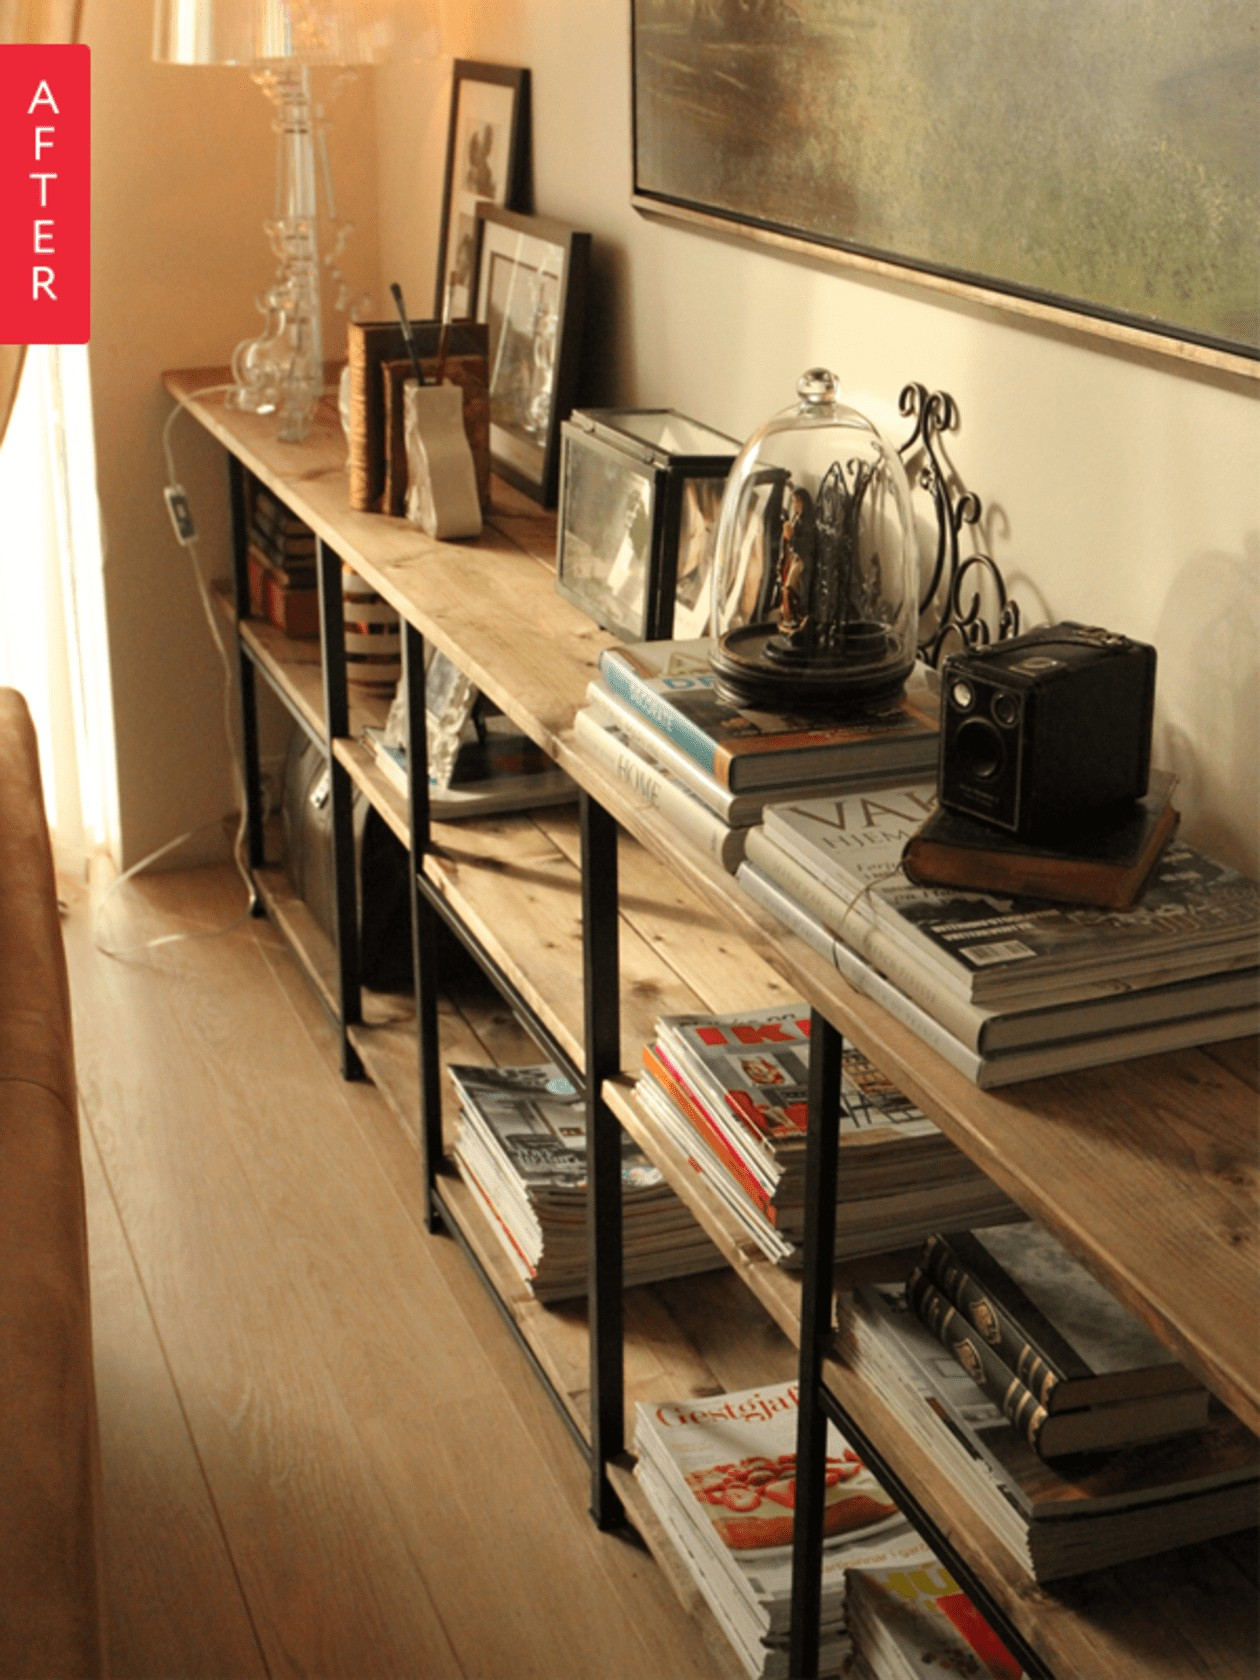 Living Room Shelving Unit